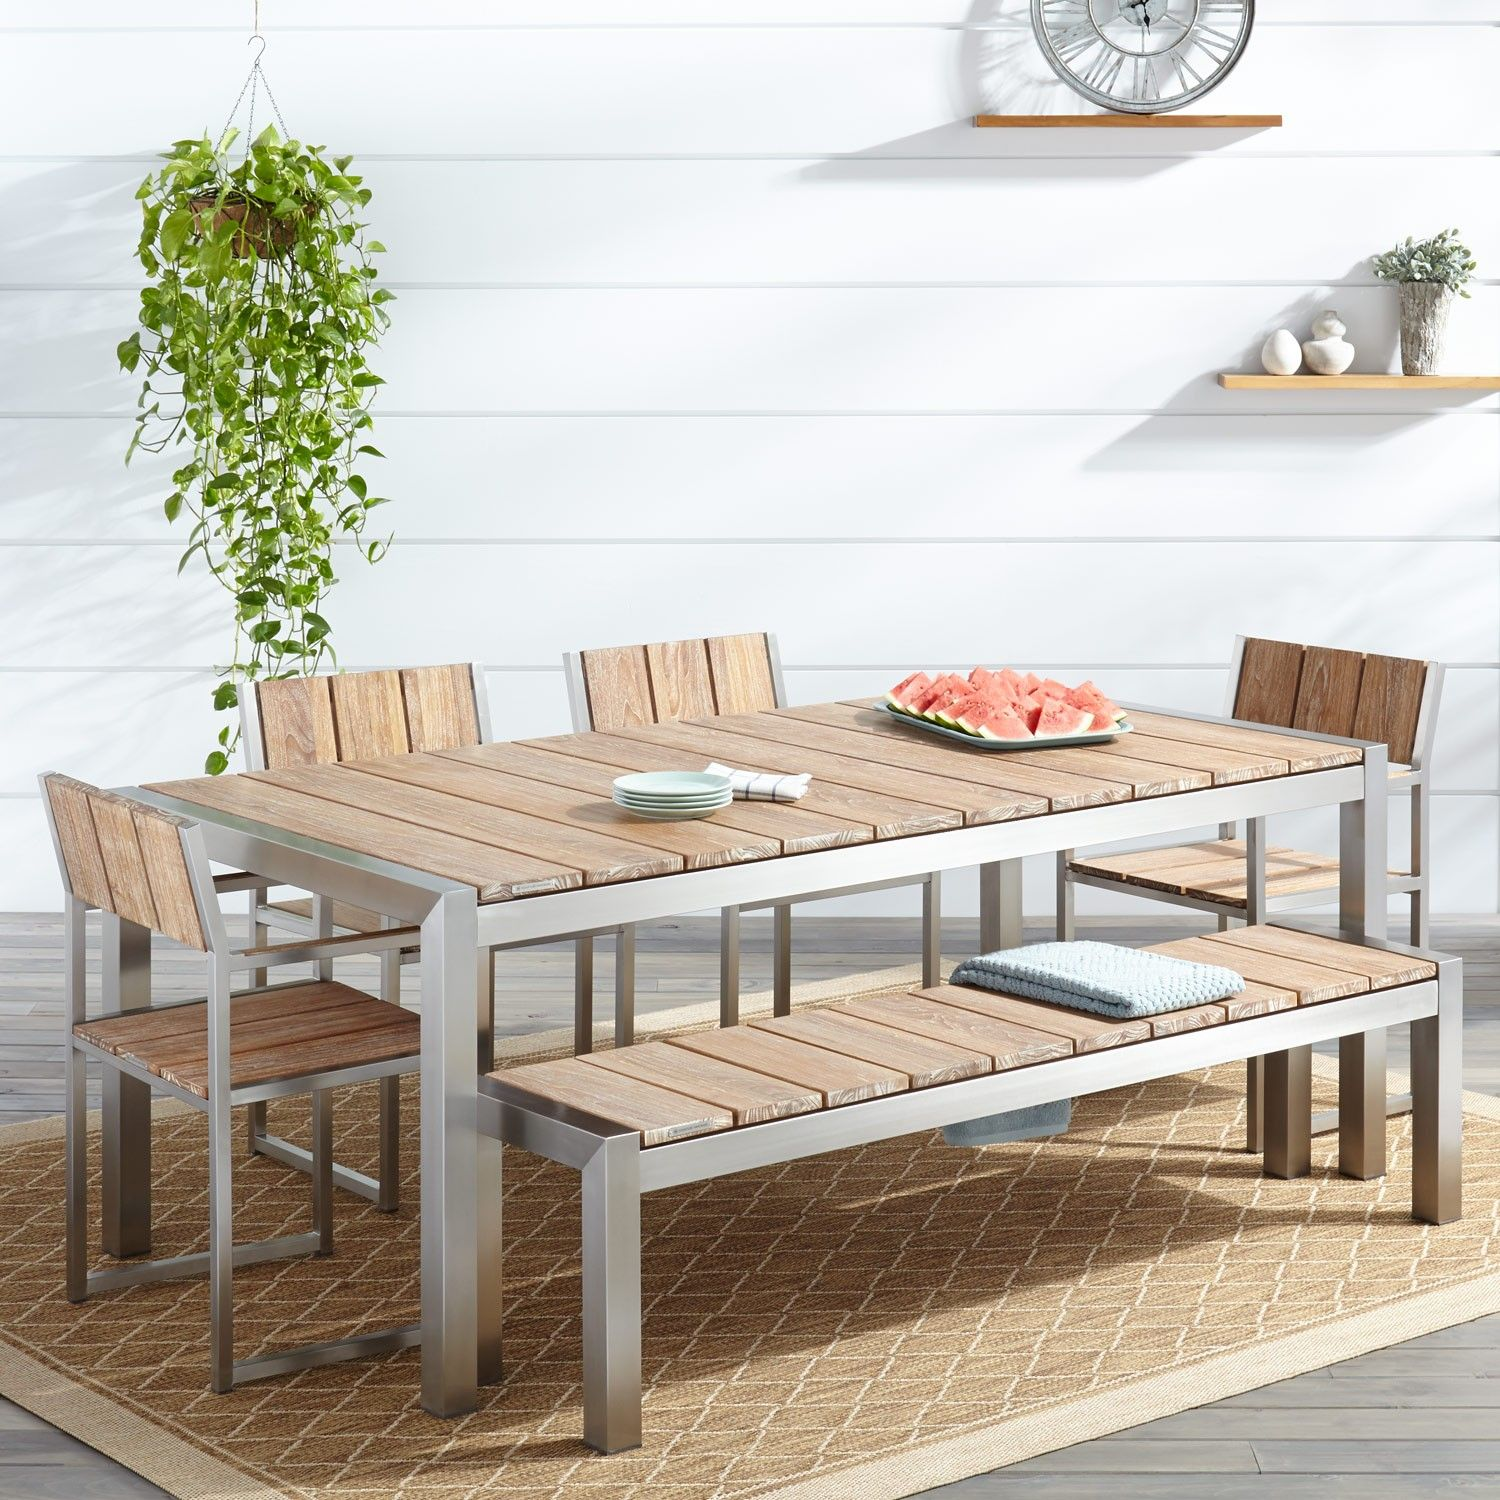 Macon 6 Piece Rectangular Teak Outdoor Dining Table Set